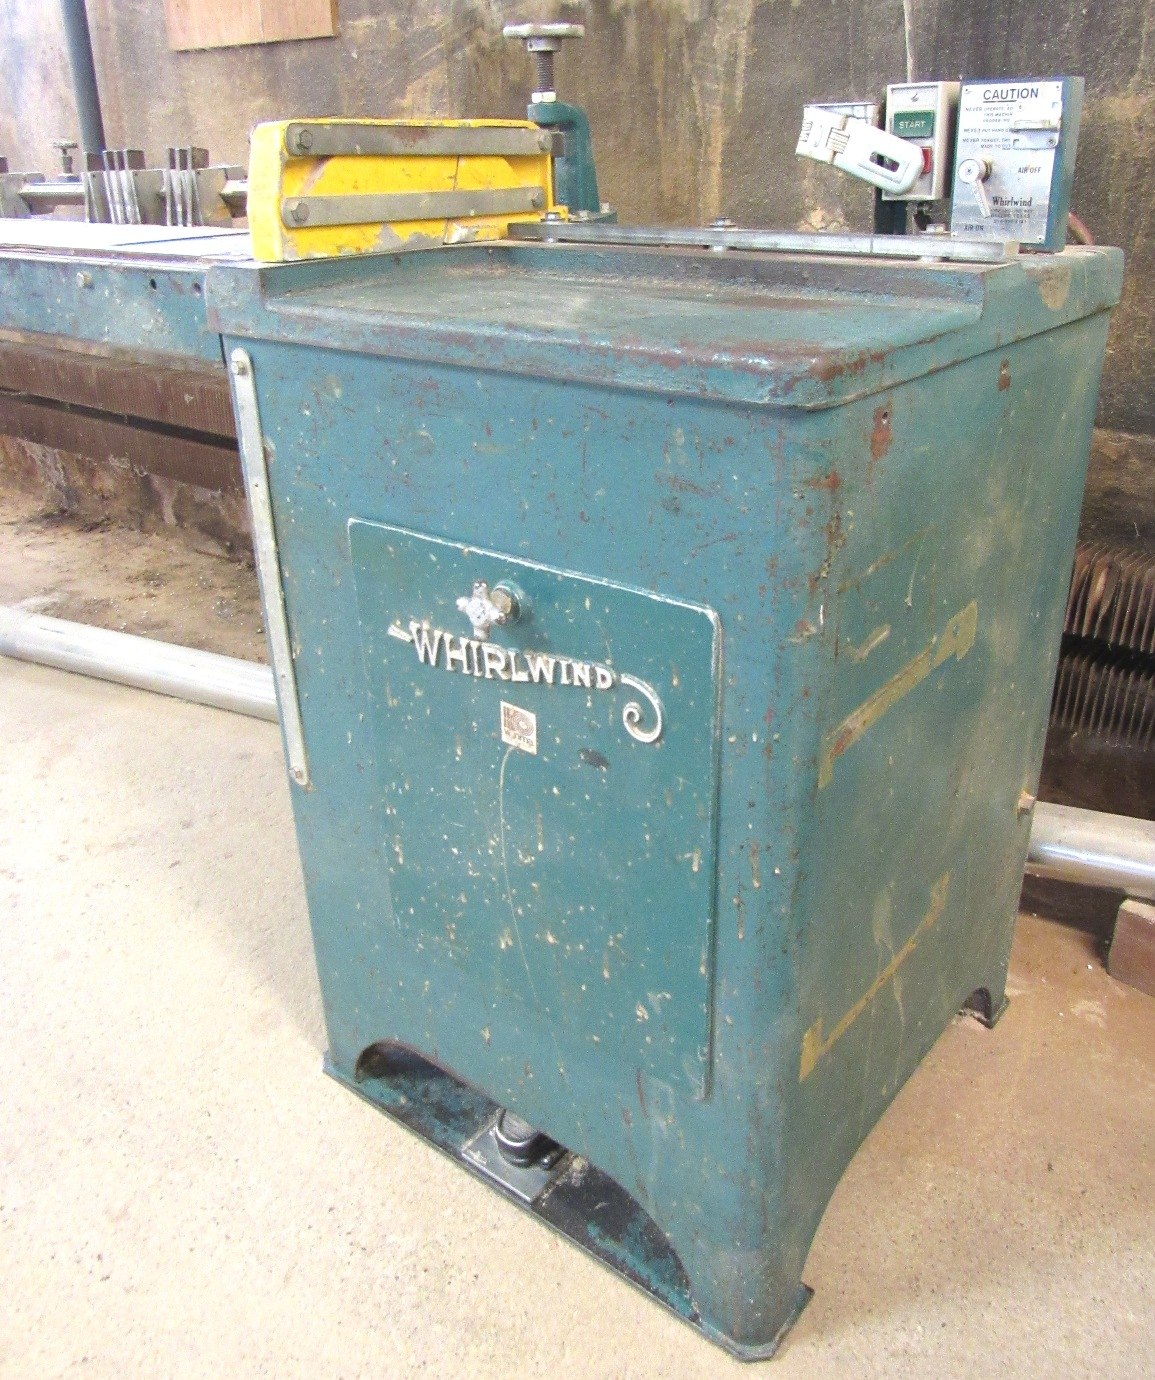 Lot 22 - Whirlwind Mod.1000L Semi-Automatic Cut Off Saw - S/N 1129S49L, Roller Infeed Table